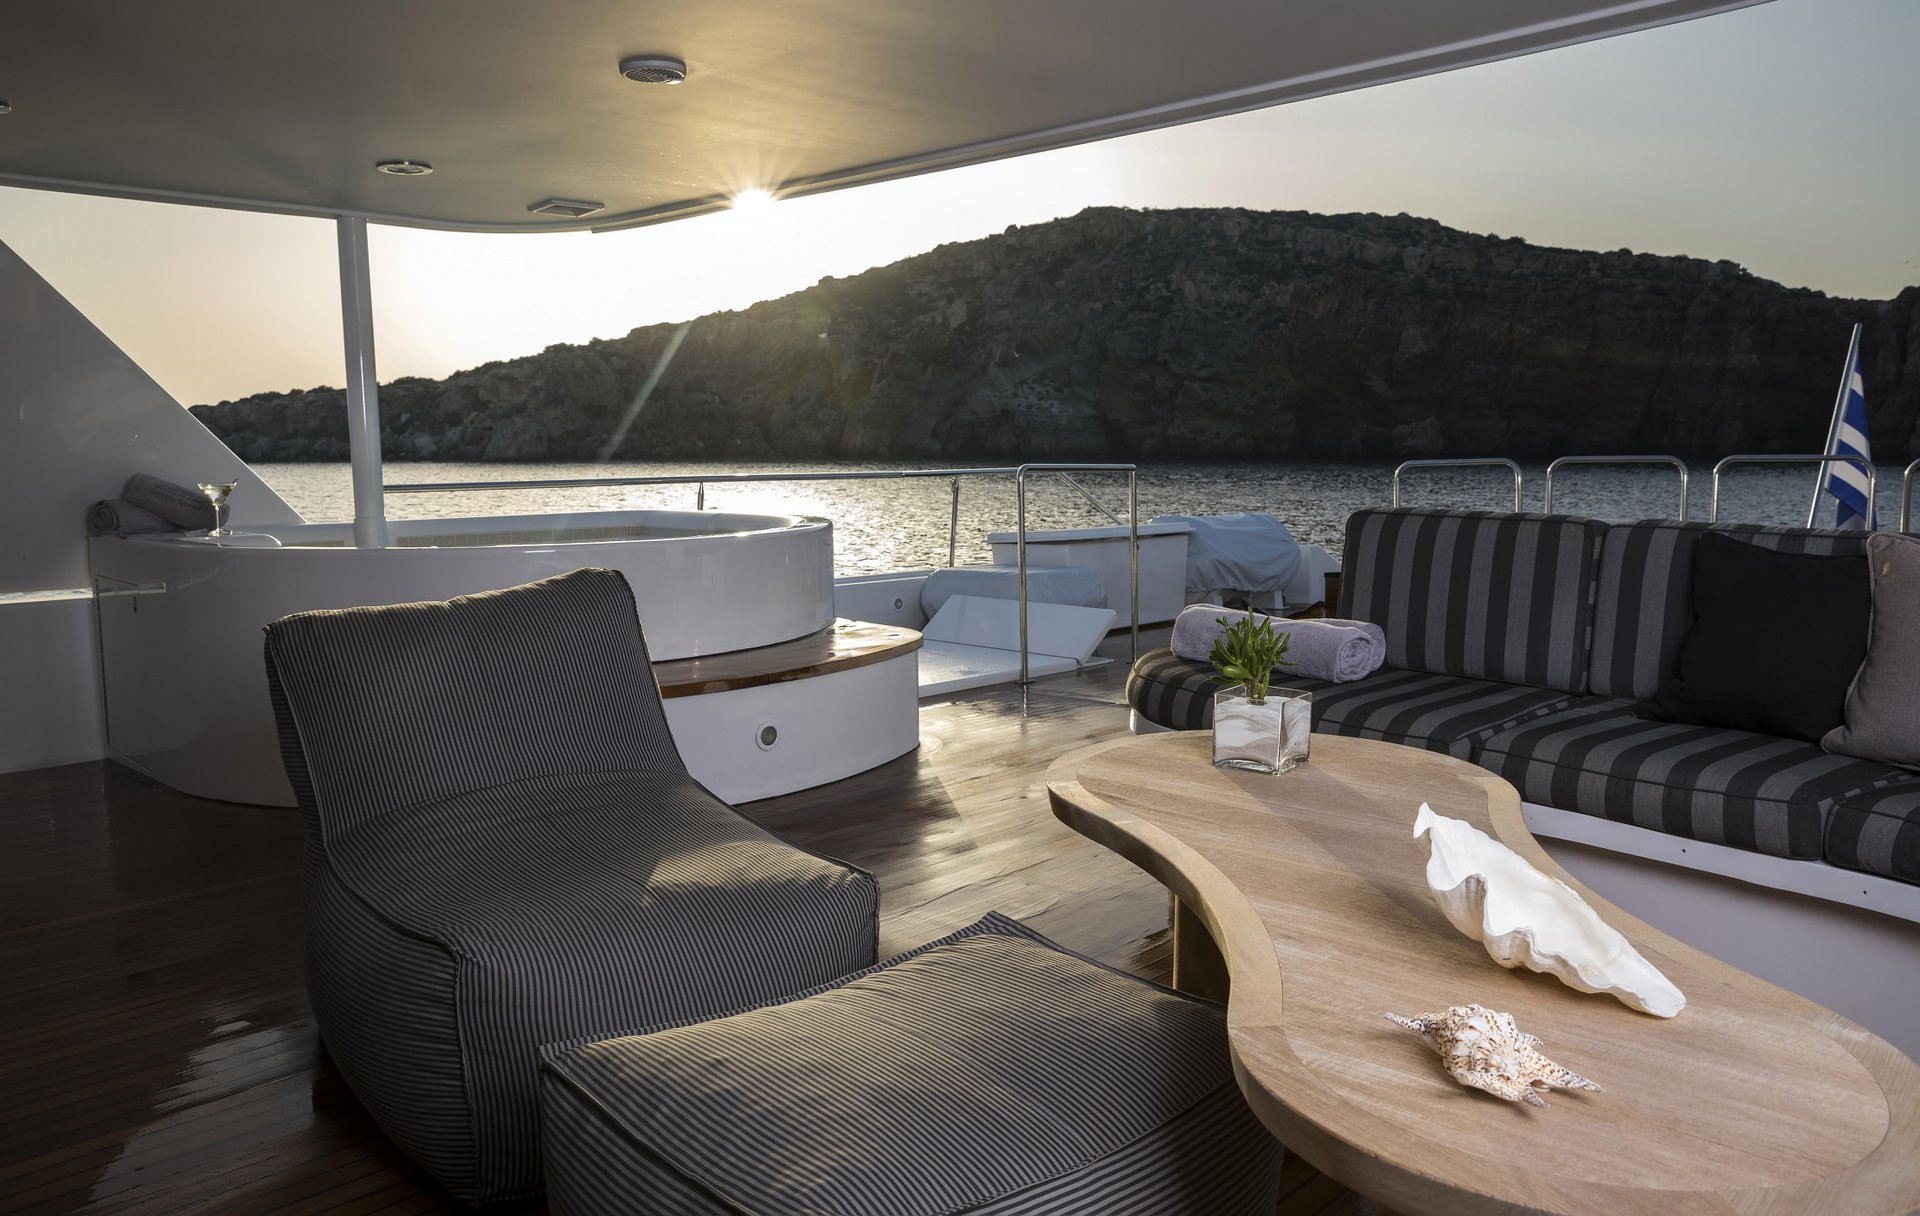 m/y endless summer yacht for charter deck area